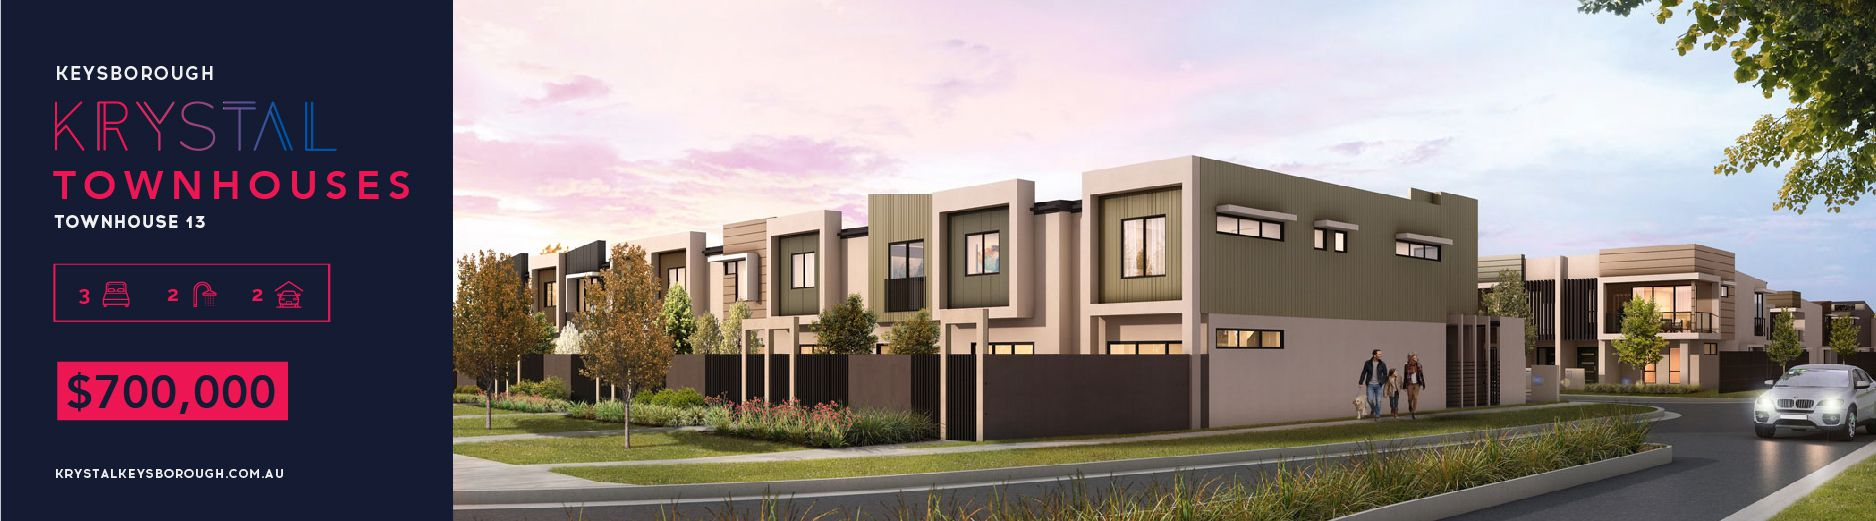 Krystal Townhouses in Keysborough